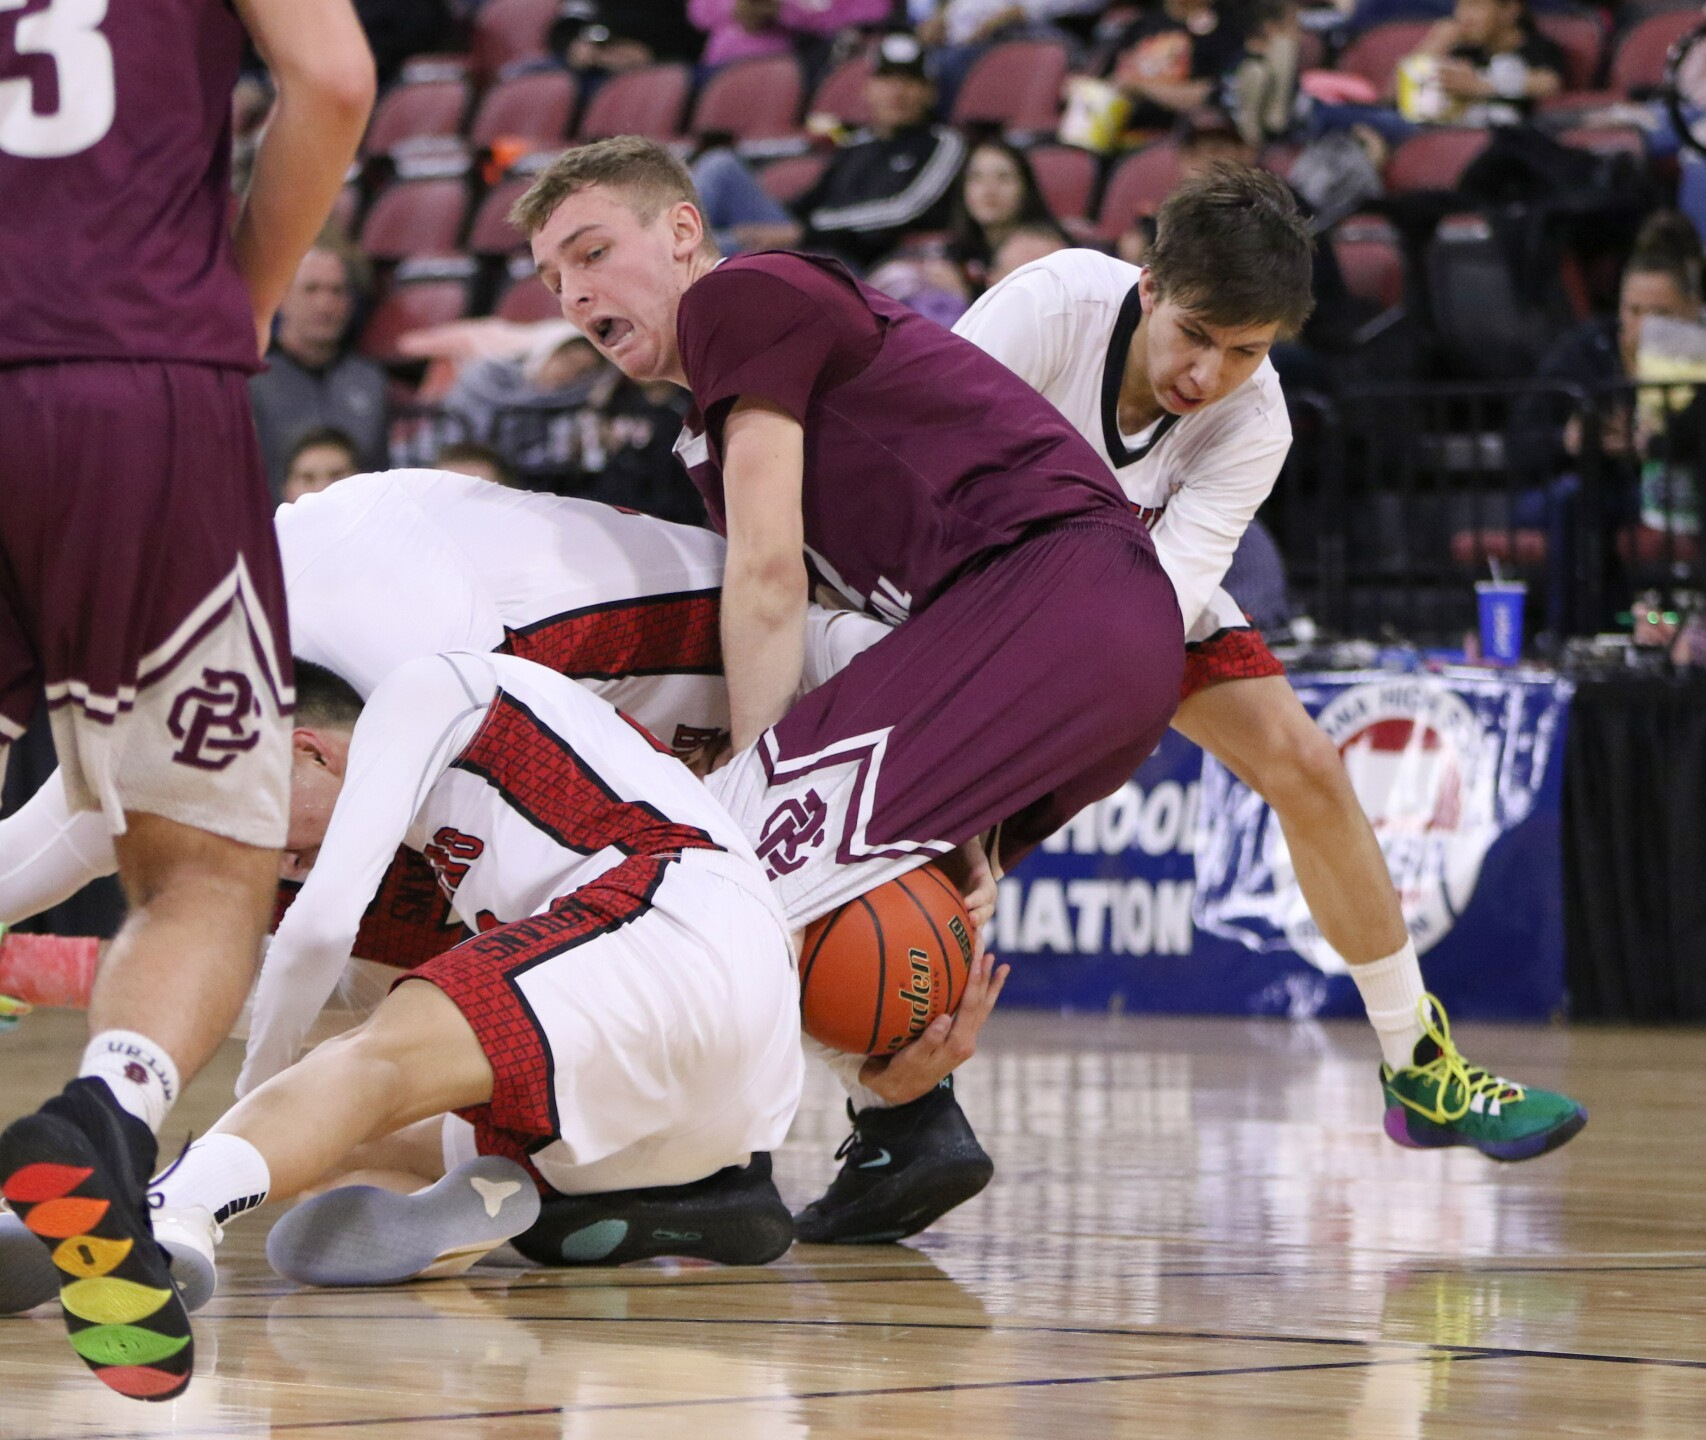 Three Browning players and Jared Simkins fight for possession of the ball.jpg